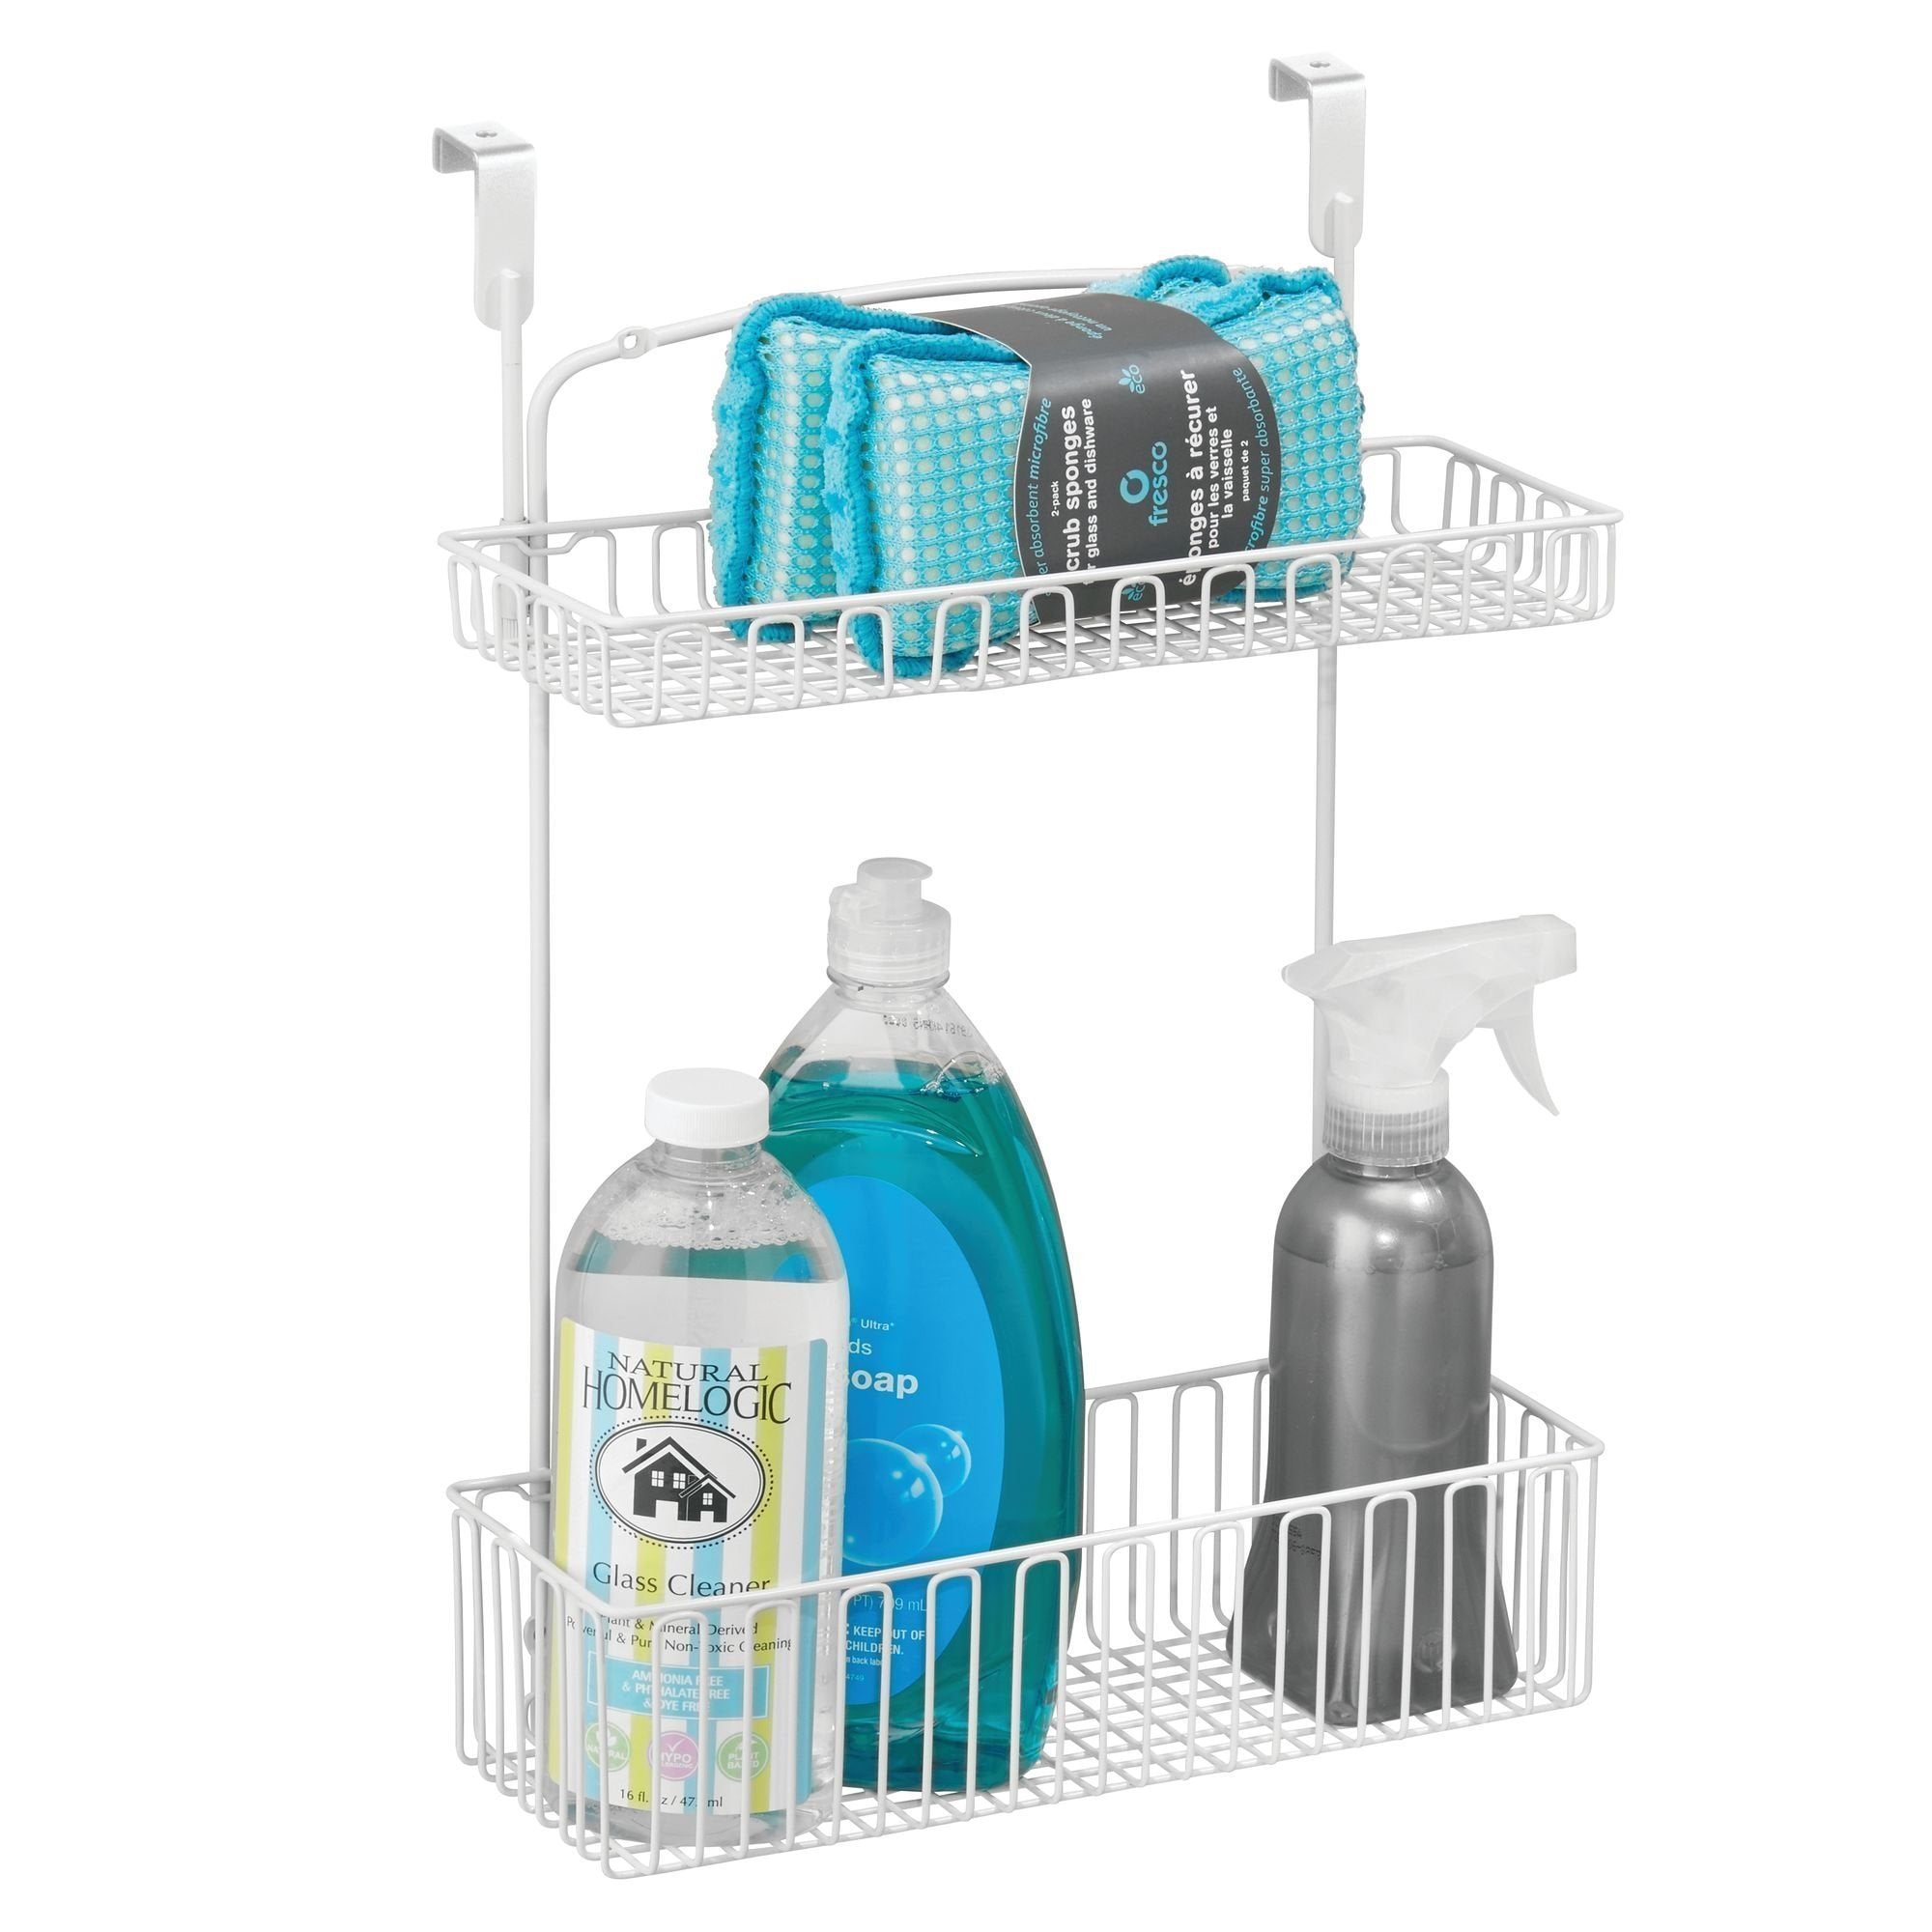 Top mdesign metal farmhouse over cabinet kitchen storage organizer holder or basket hang over cabinet doors in kitchen pantry holds dish soap window cleaner sponges 2 pack matte white